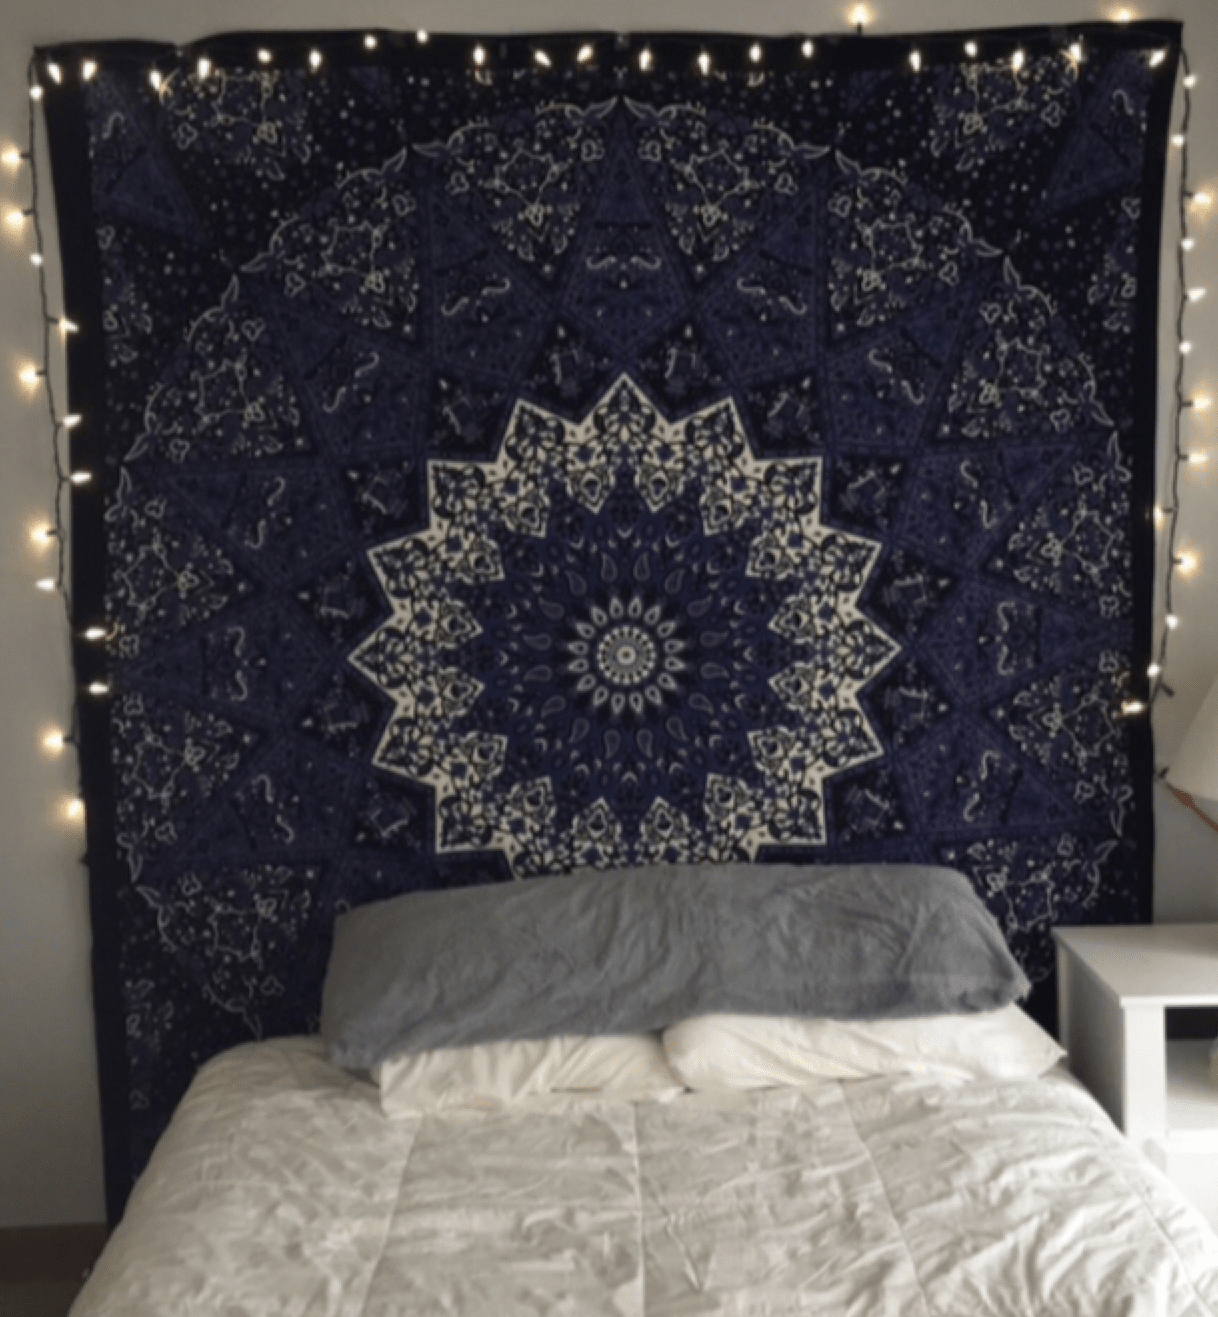 hanging tapestry over a bed